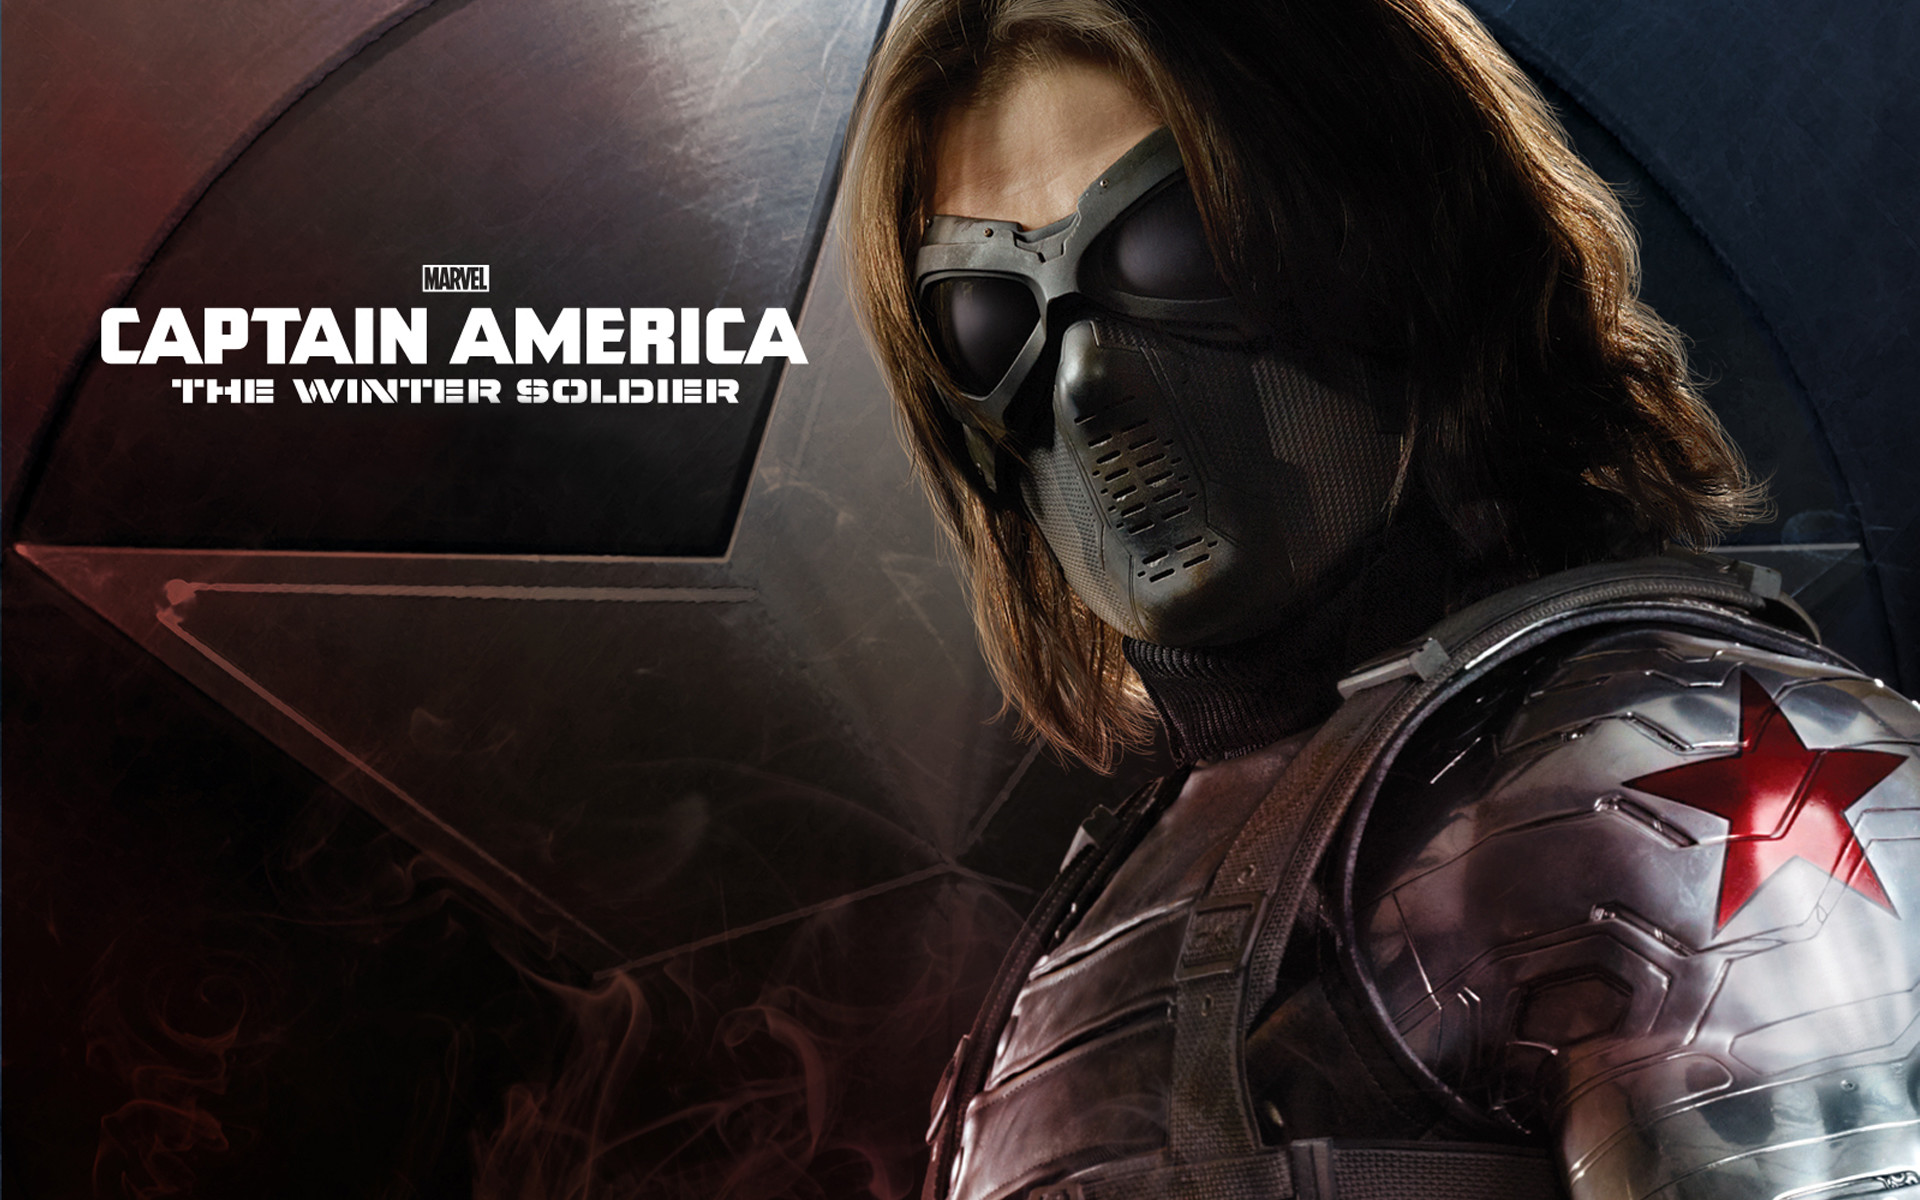 1920x1200 sebastian stan as bucky barnes / the winter soldier captain america 2 movie